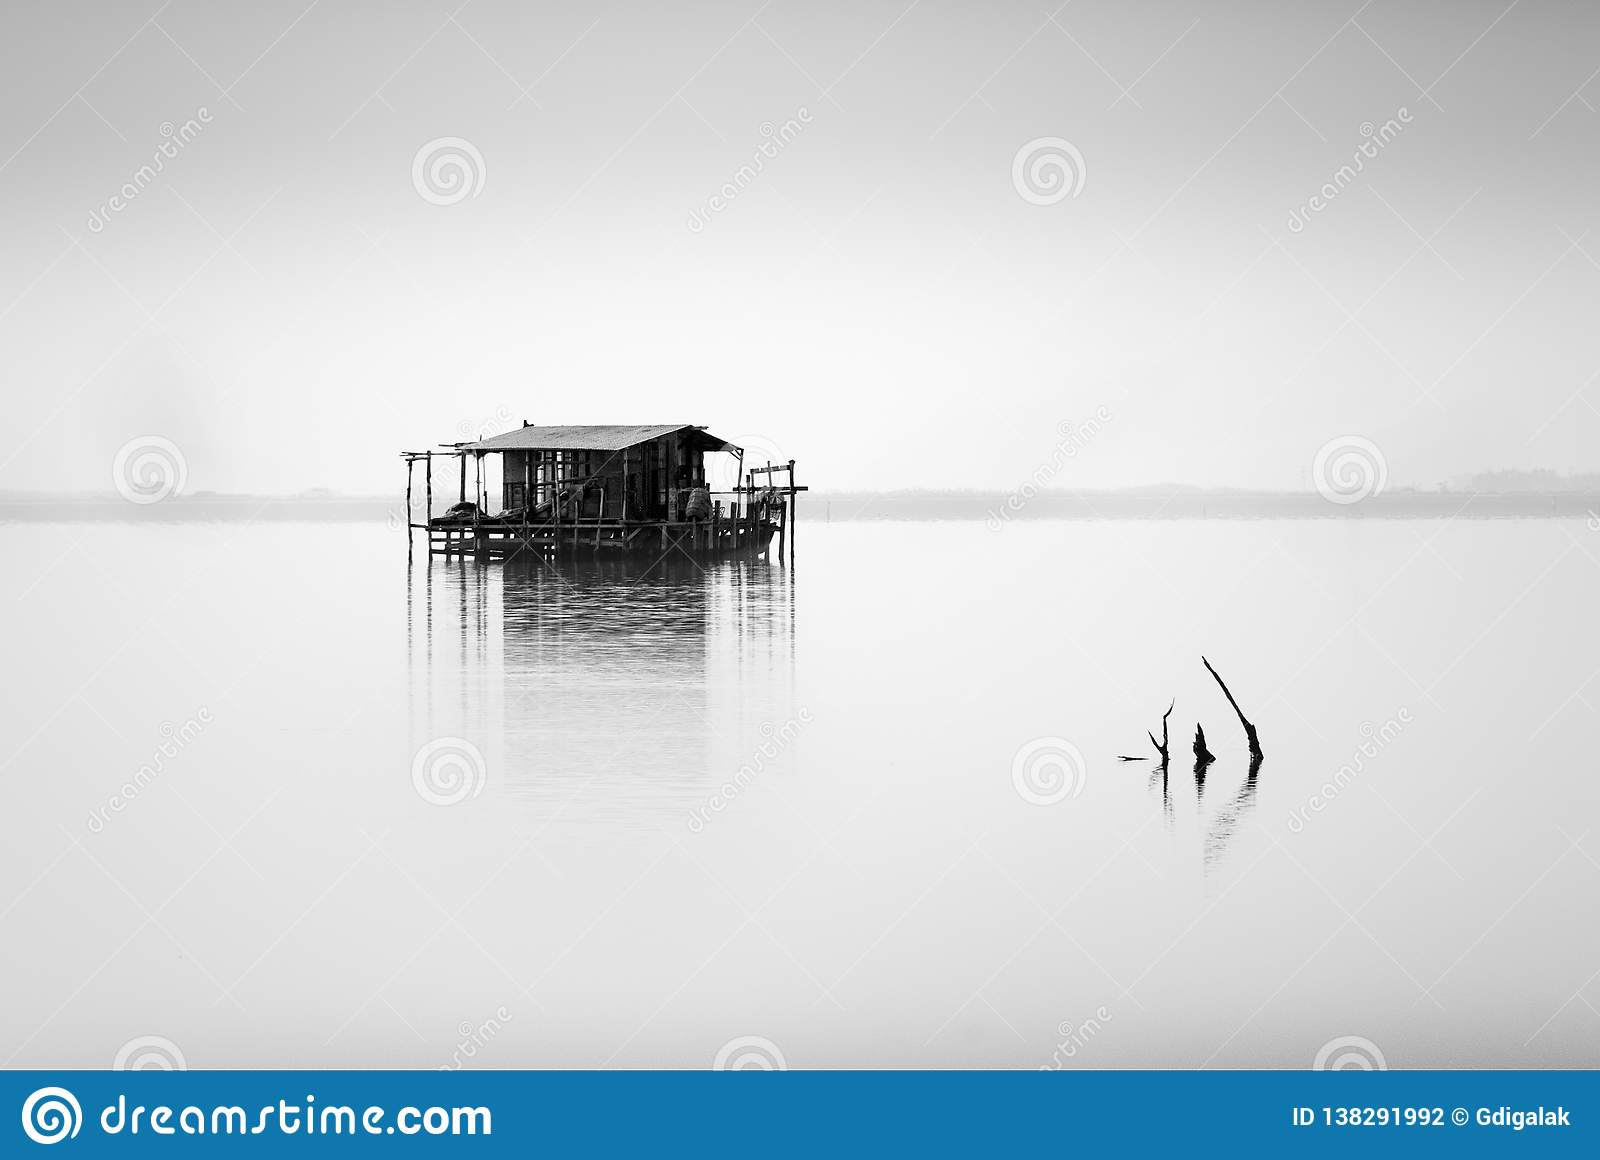 Minimal seascape with fishing hut